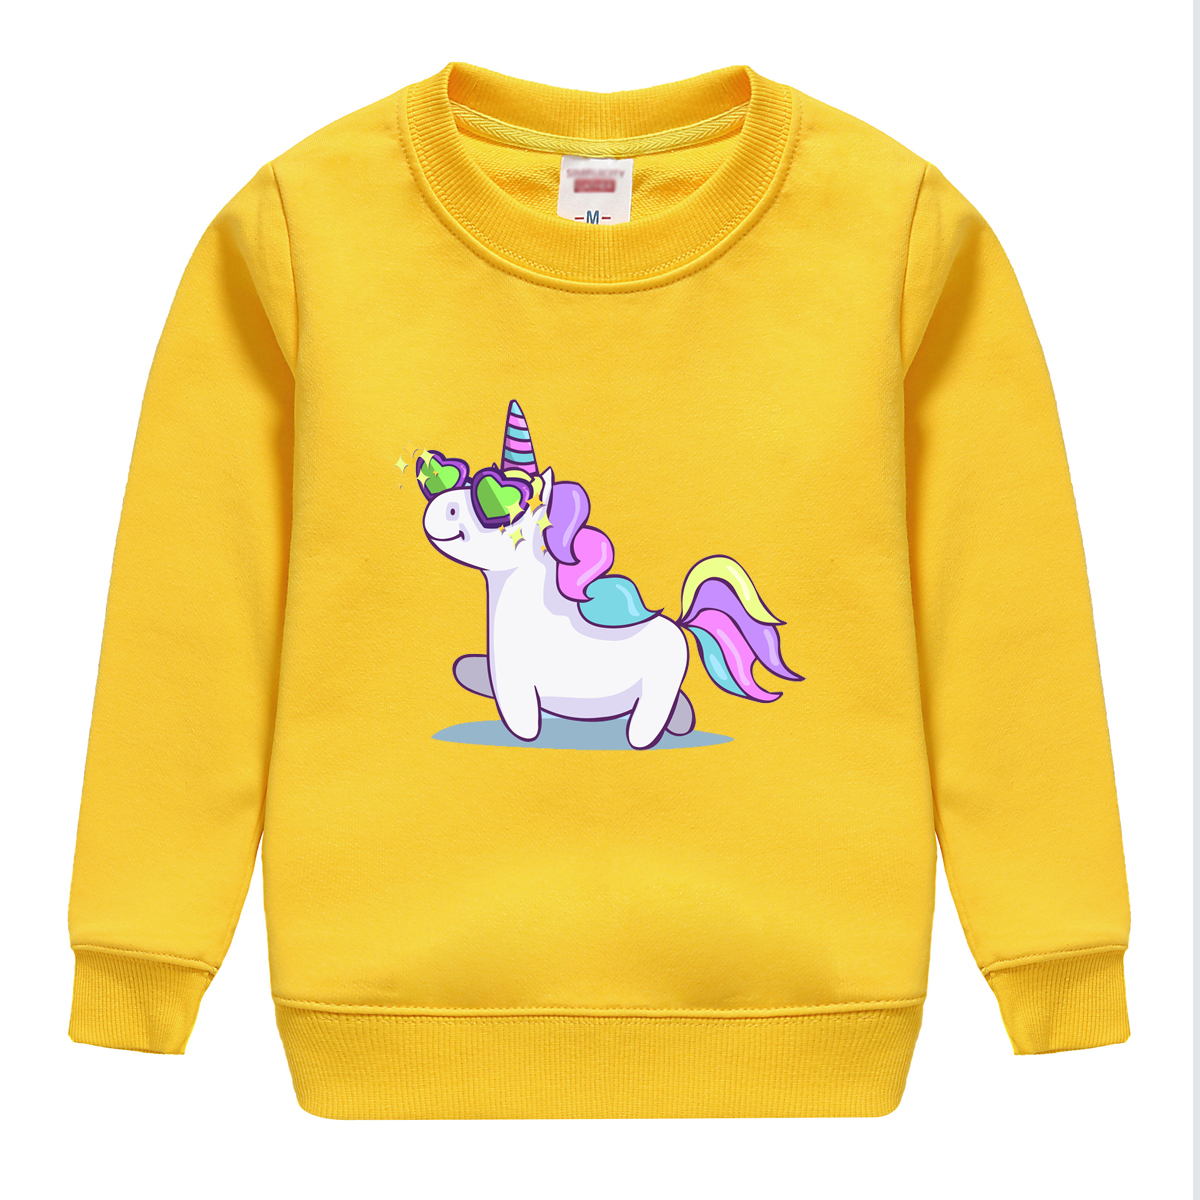 fashion style winter autumn sweatshirt long sleeve sweater with eight colors for child choose design for winter